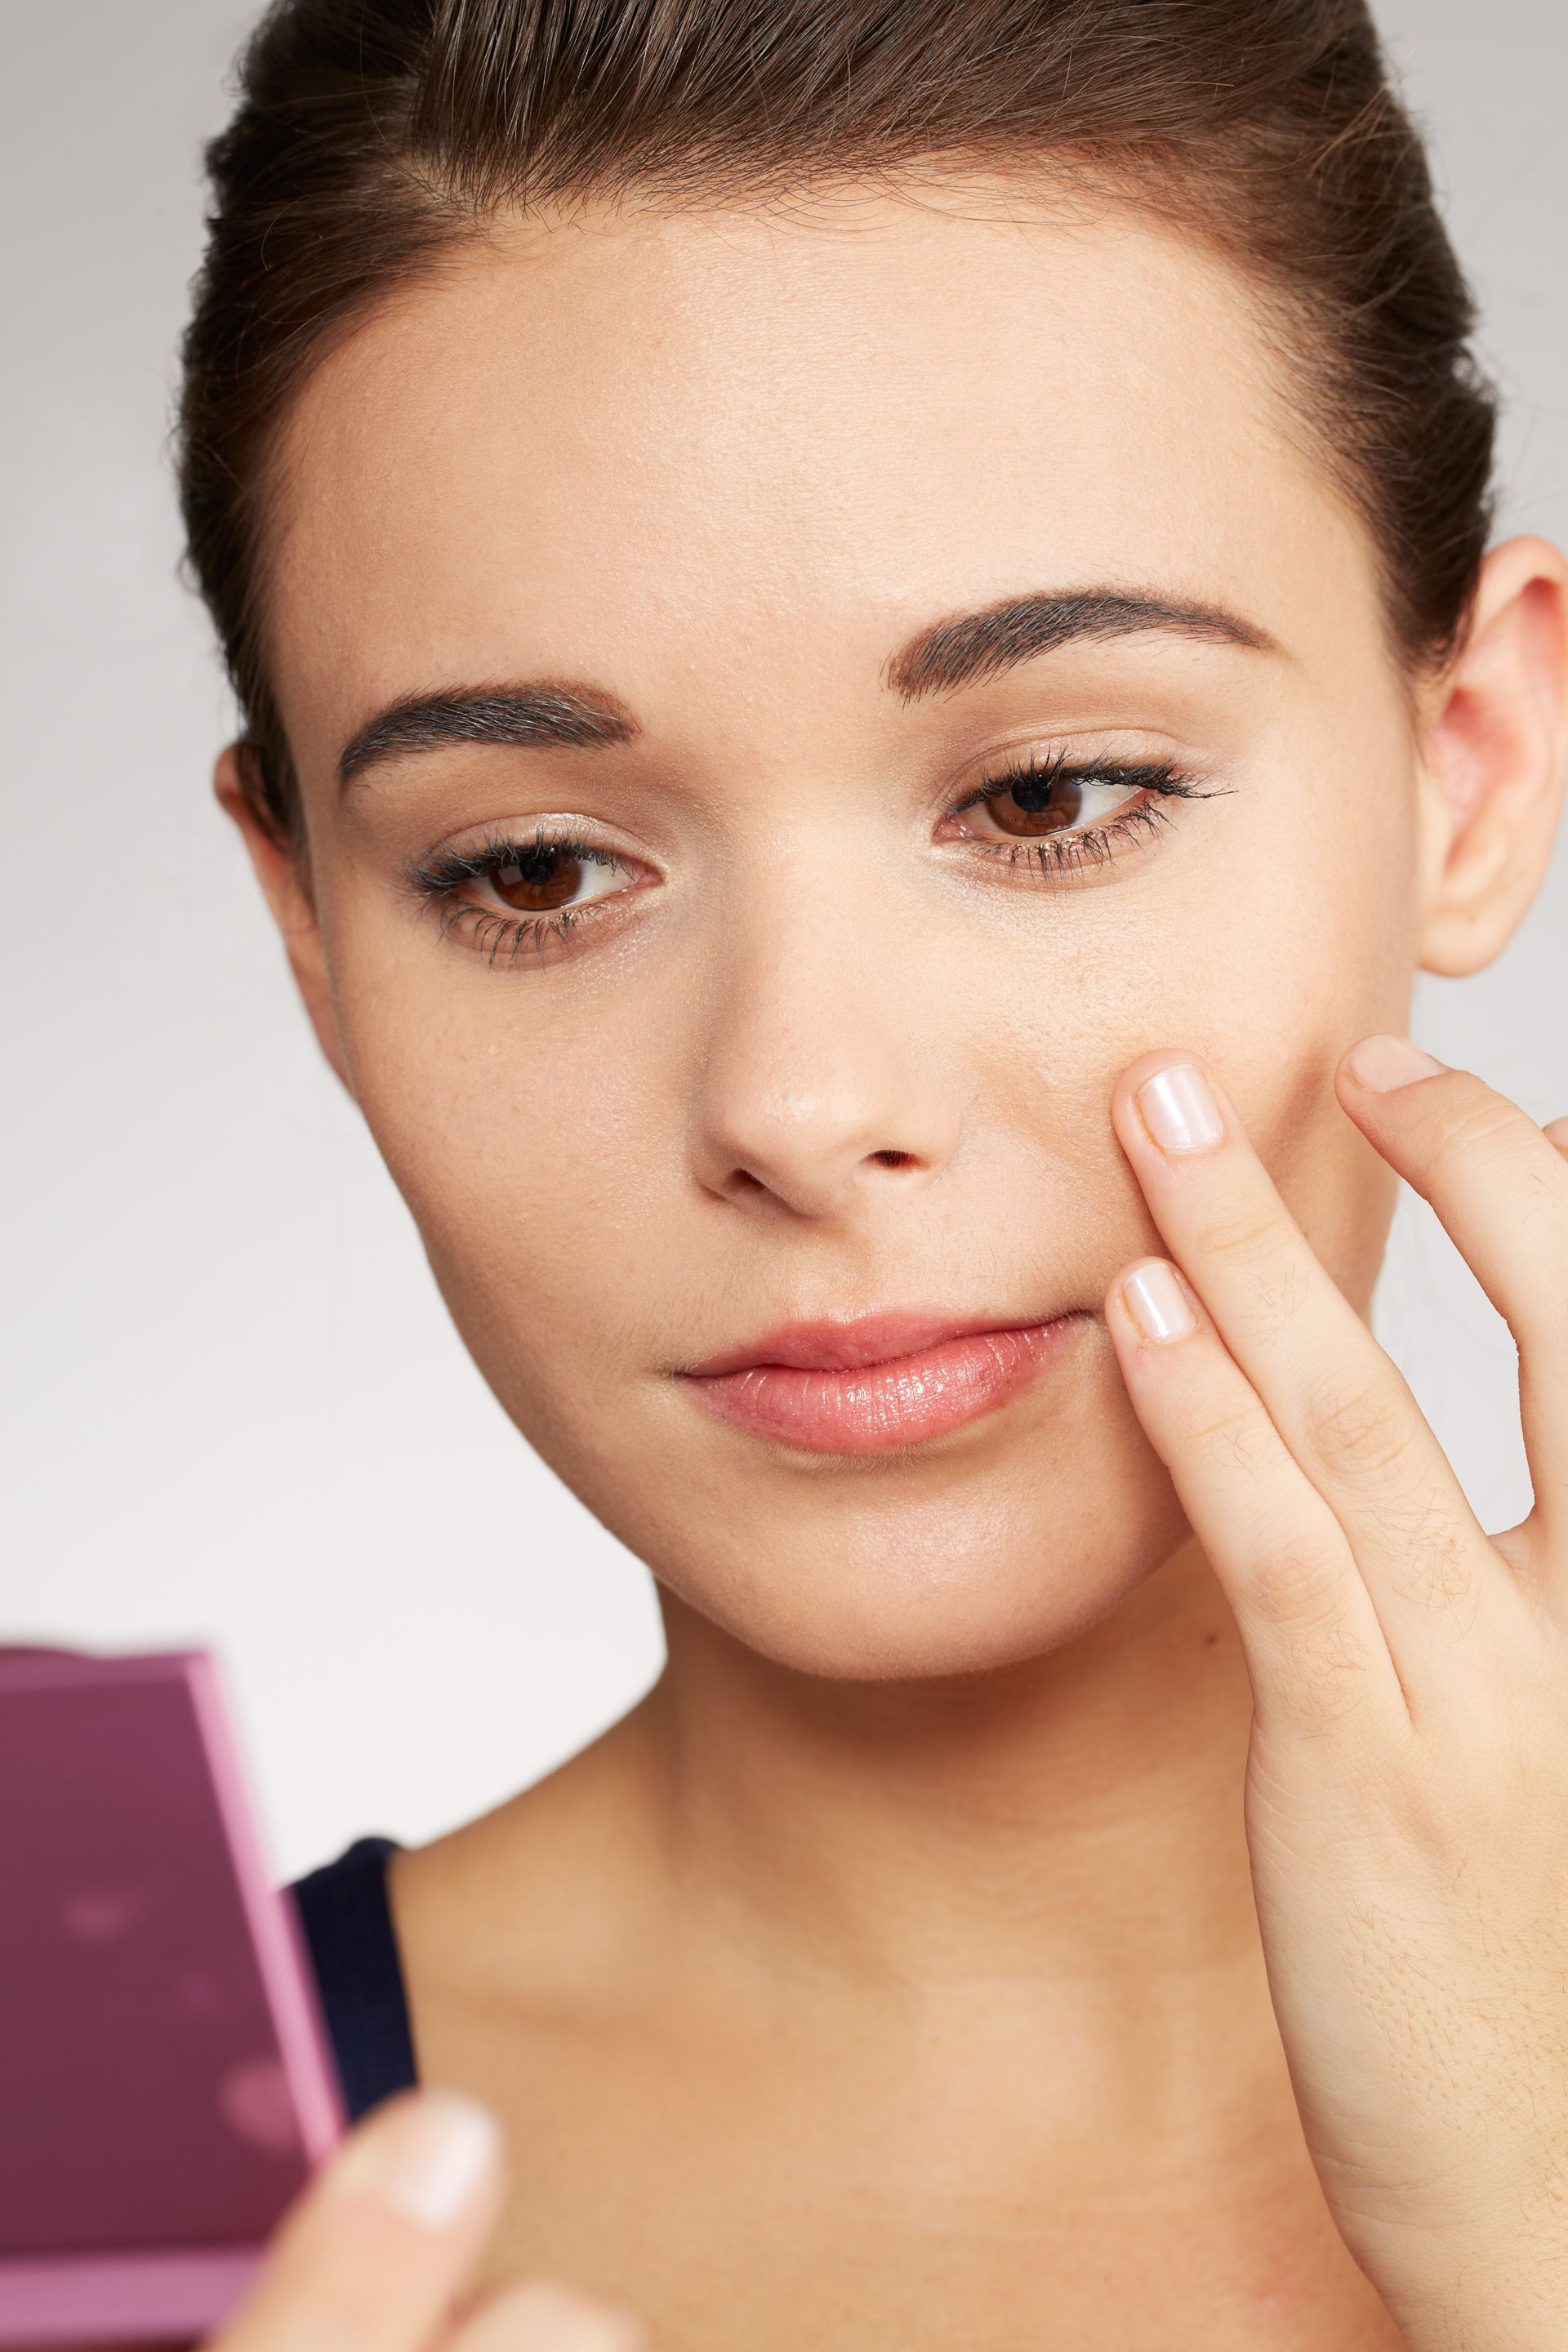 Your StepByStep Guide to Covering Acne With Makeup